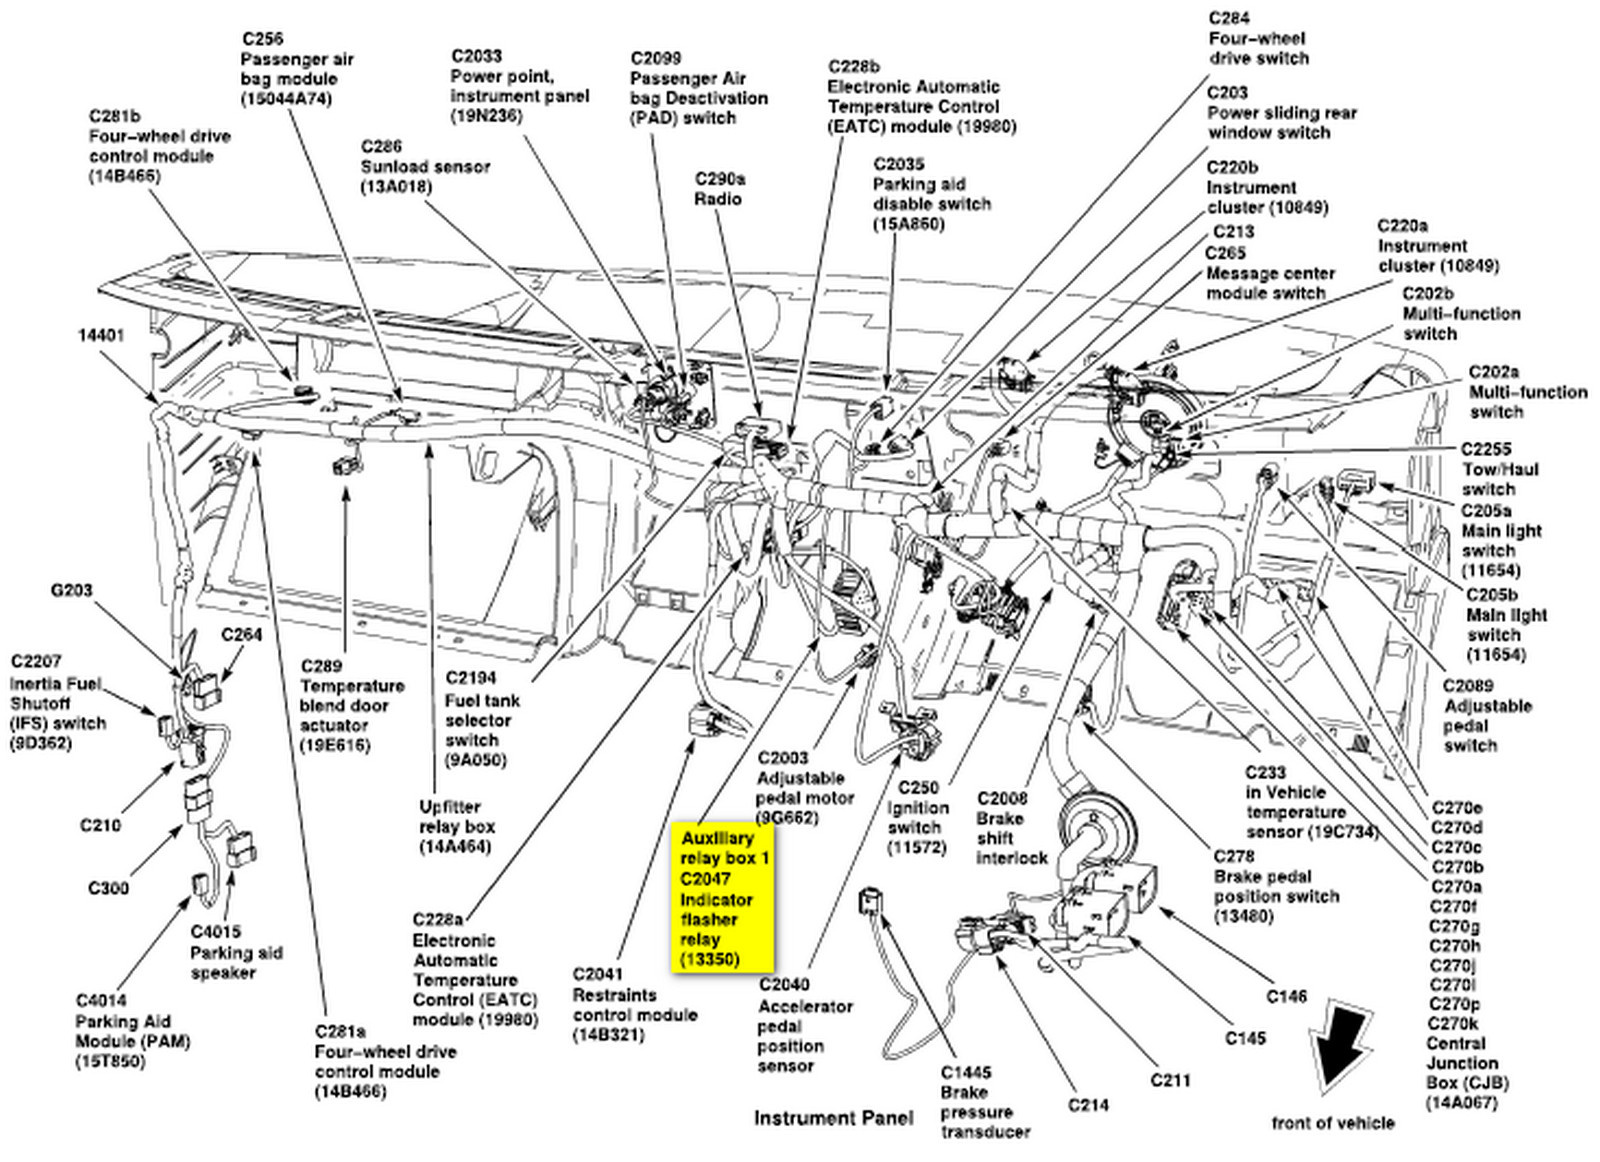 2013 Toyota Tundra Engine Diagram Great Design Of Wiring Oil Filter Location Free Download 2015 2012